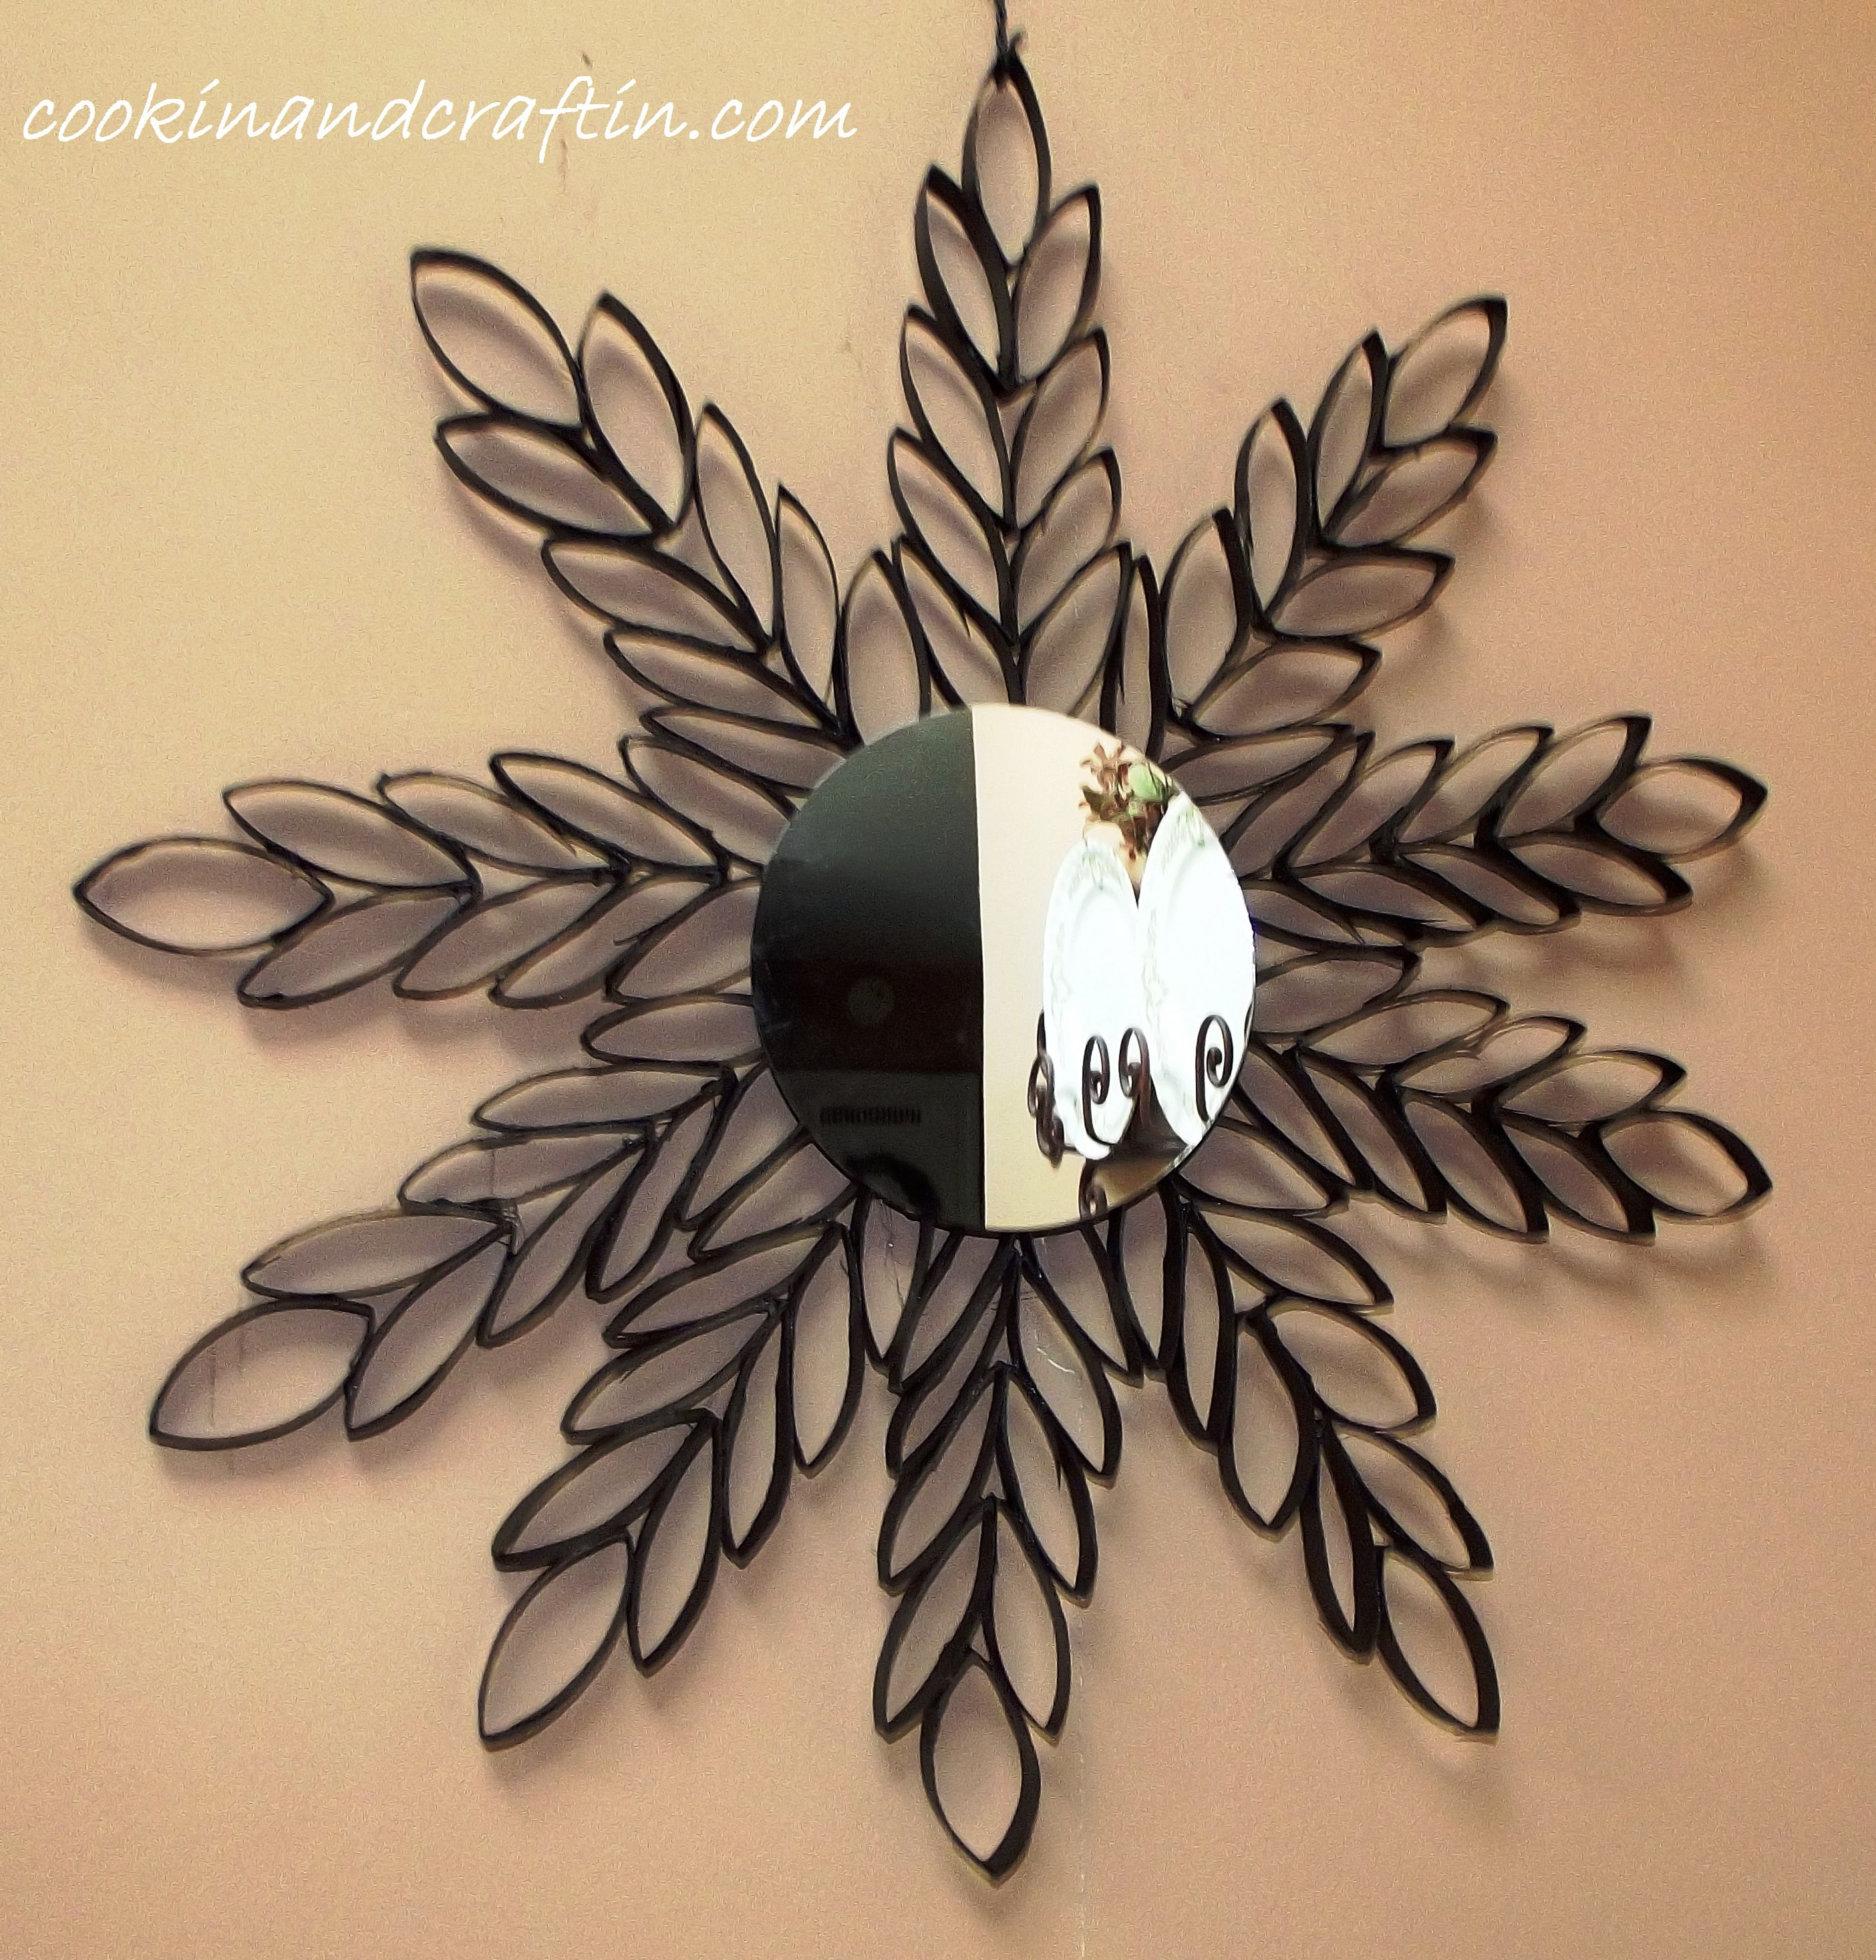 Toilet paper roll crafts wall art - Mirrored Wall Hanging Toilet Paper Roll Art Cookin And Craftin